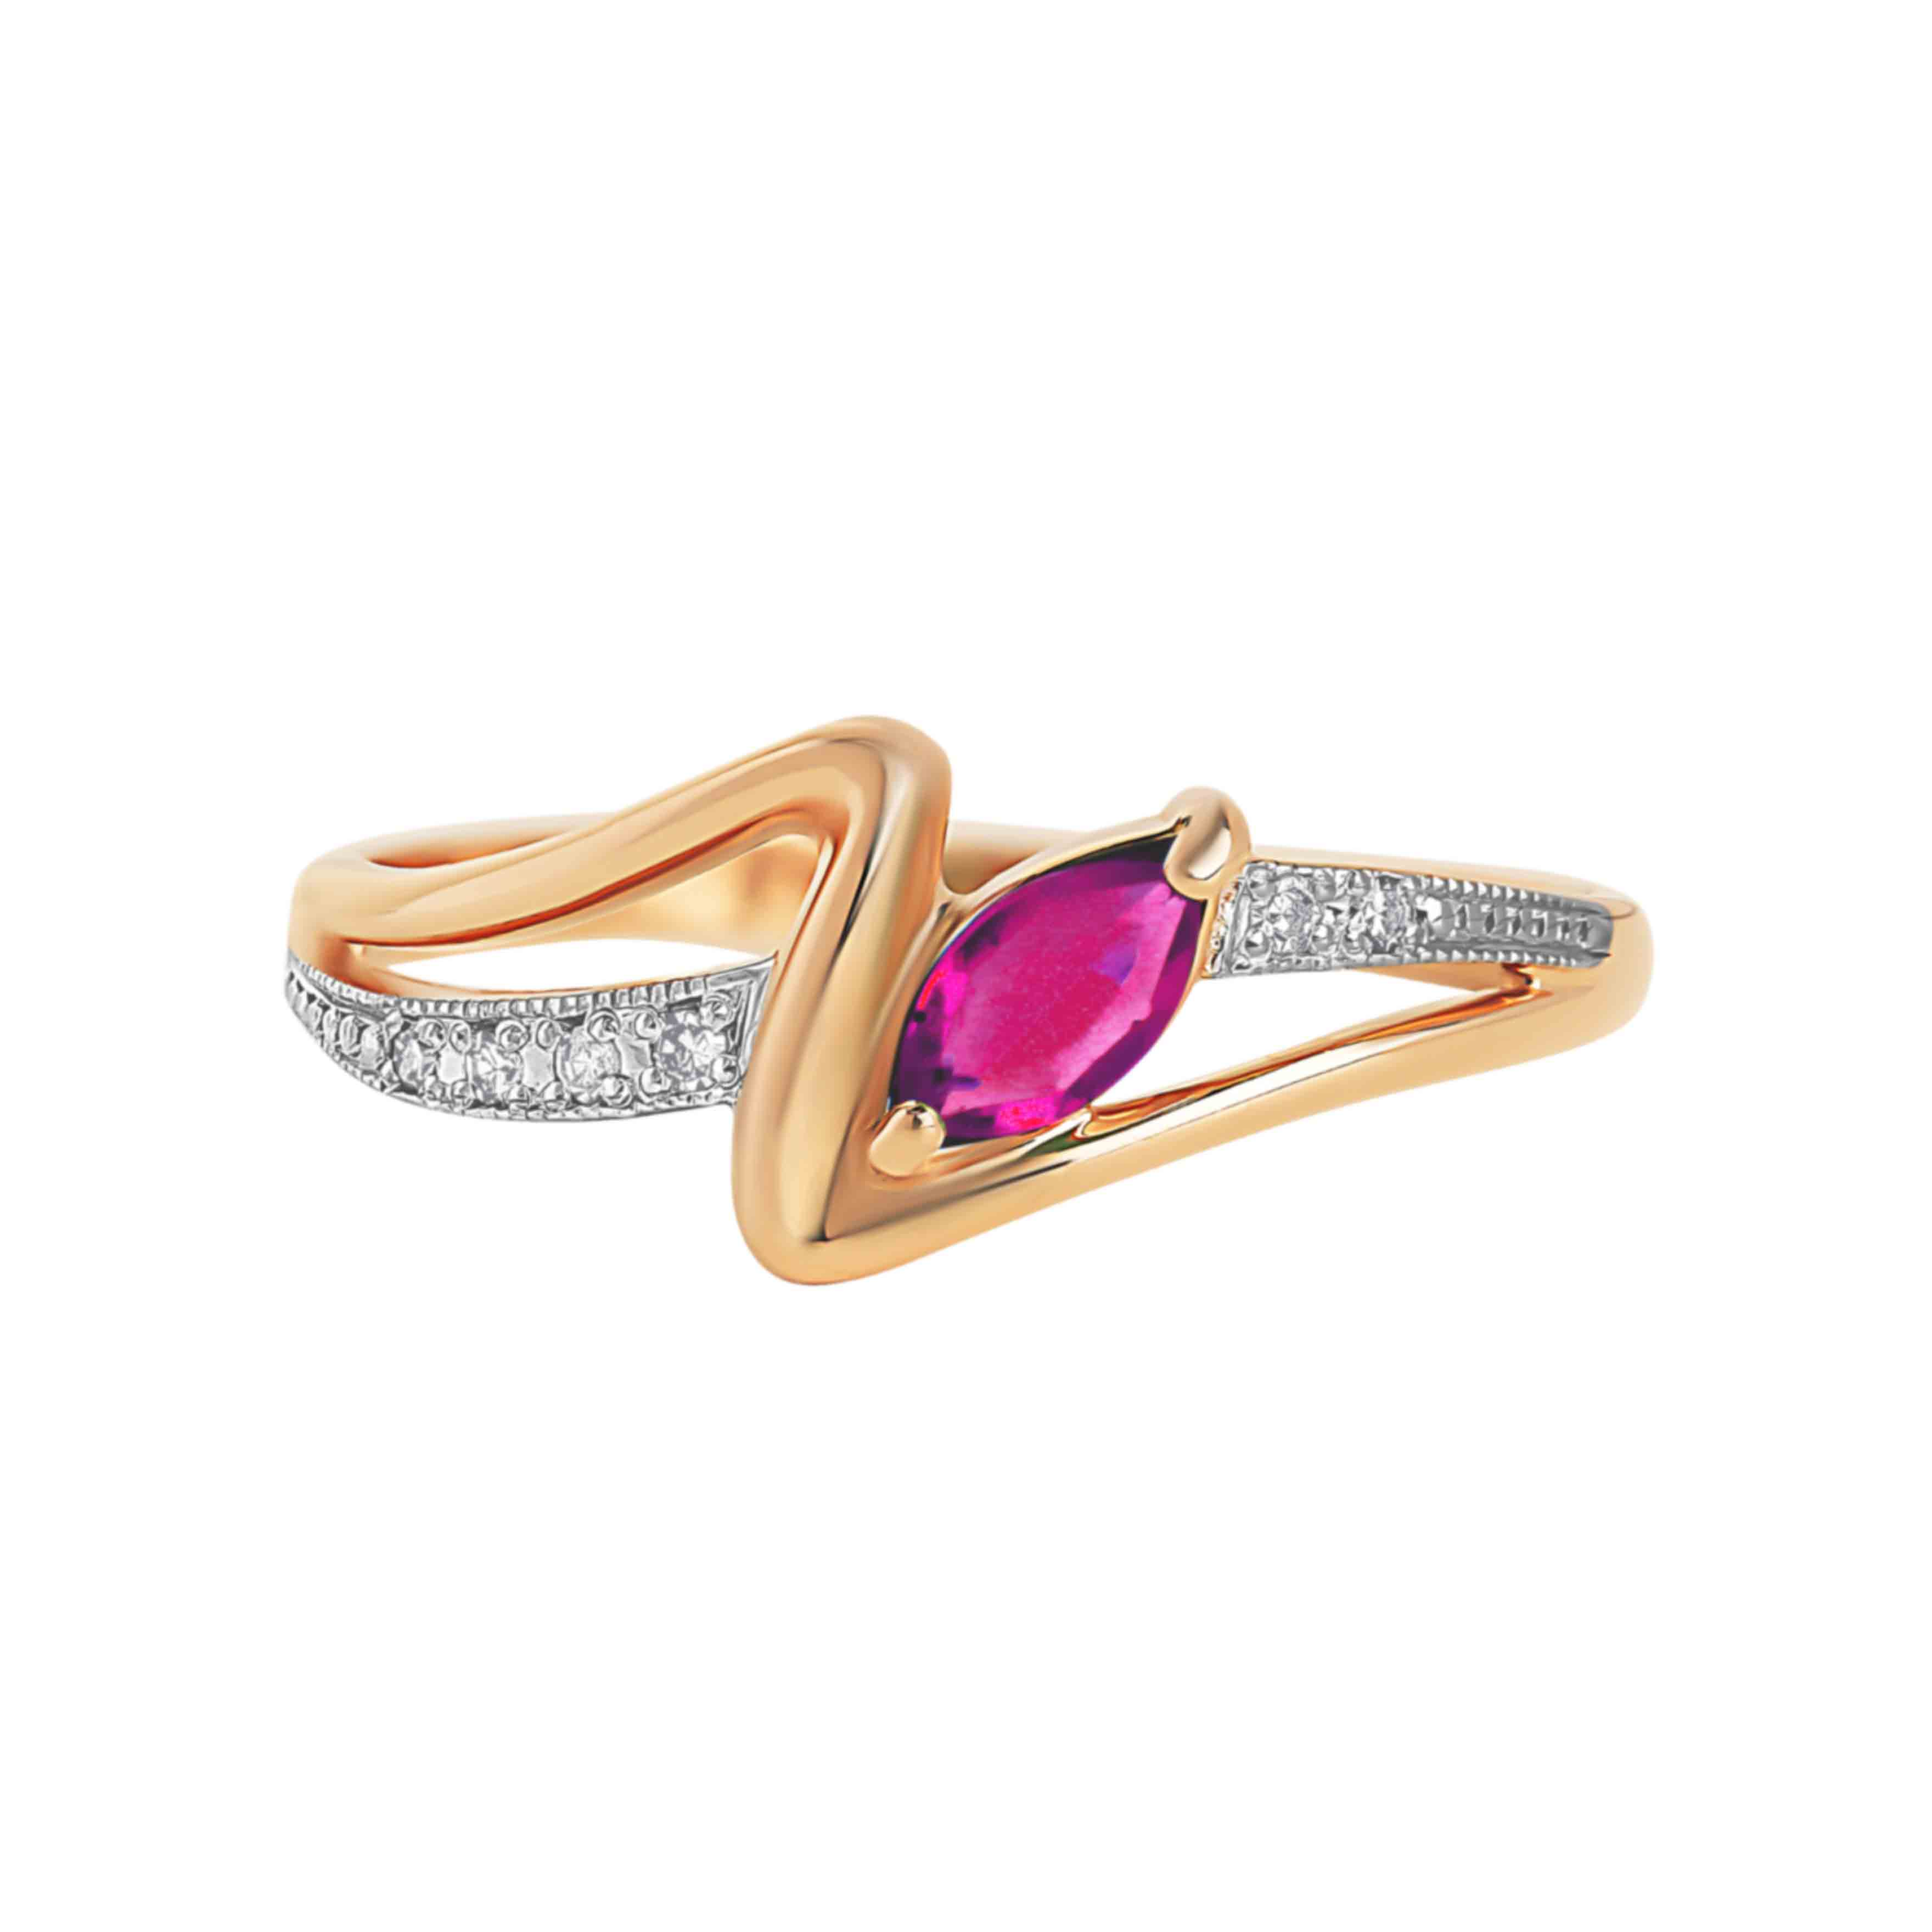 Marquise-shaped Ruby and Diamond Ring. View 2